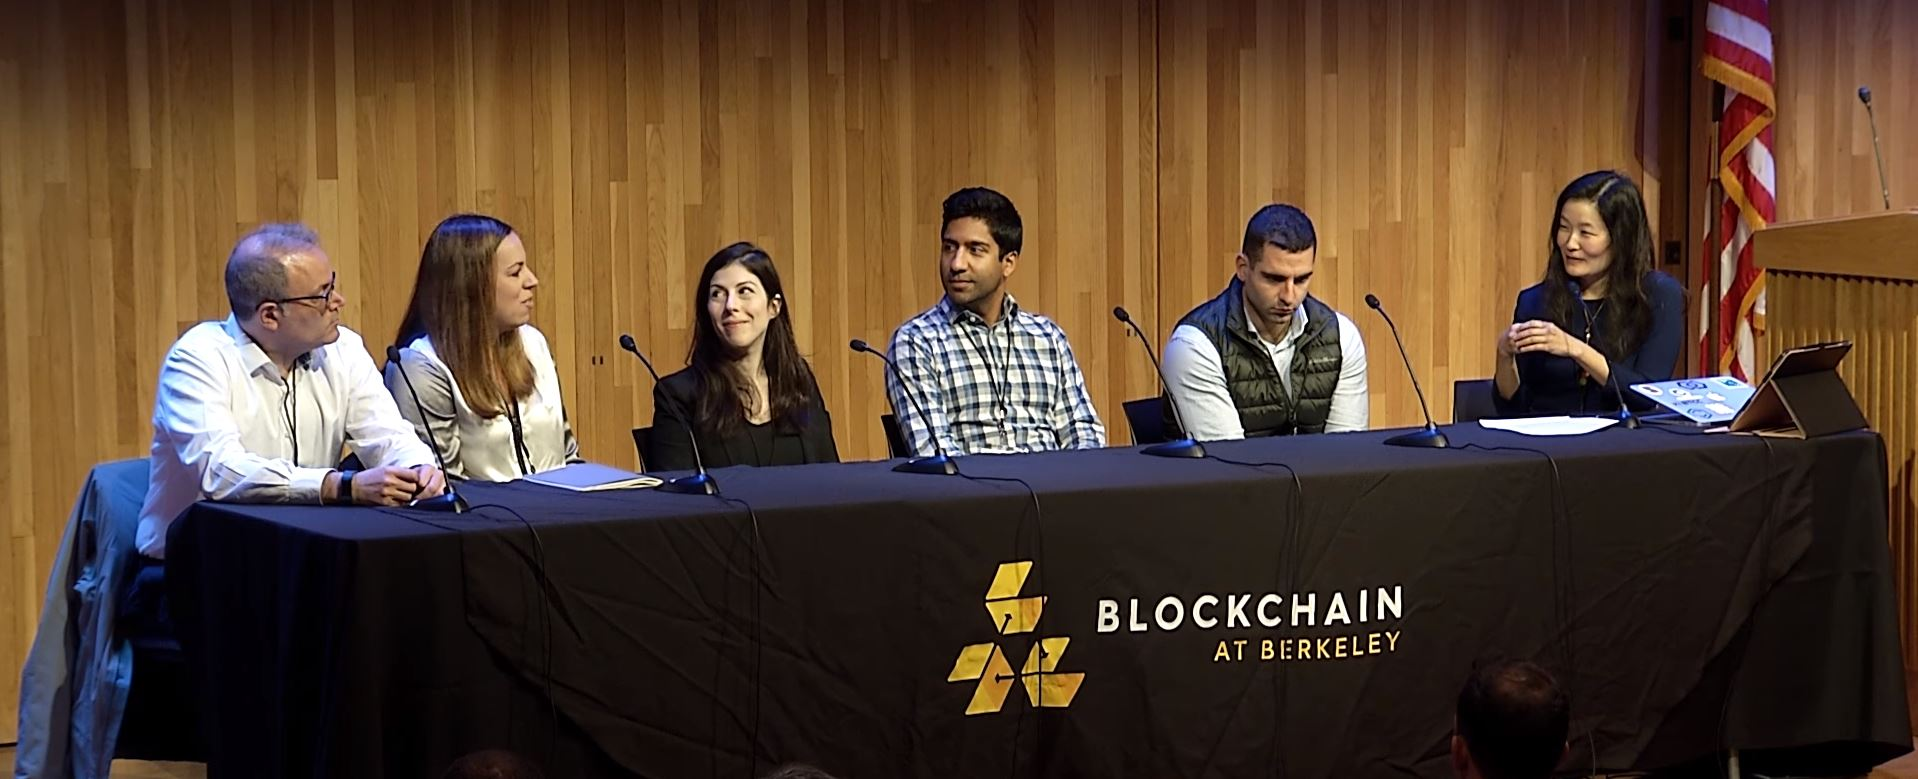 Insights From Lawyers: Blockchain at Berkely's Legal Panel